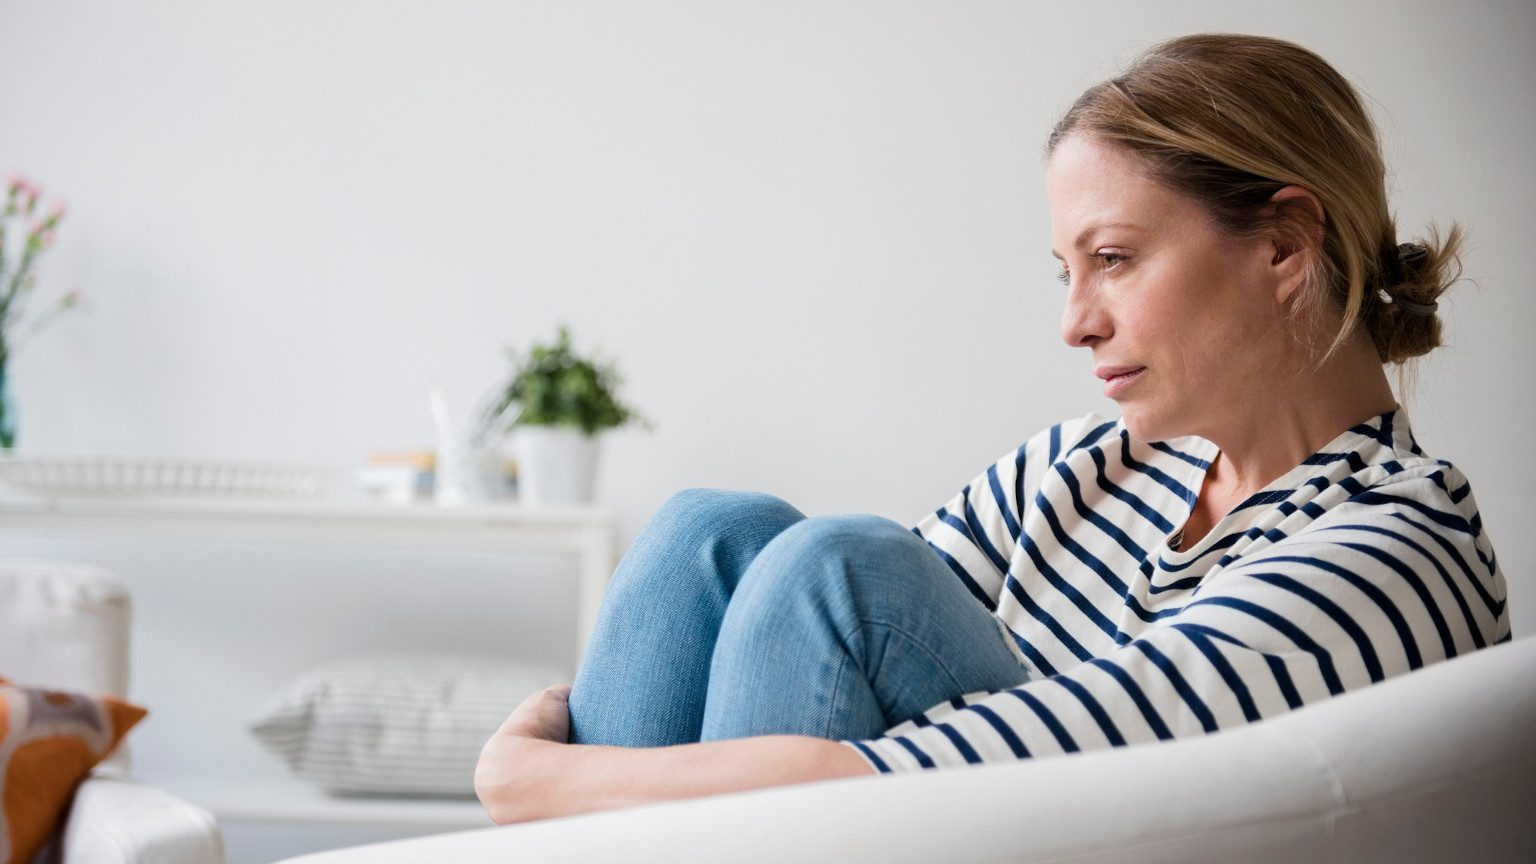 Women sitting holding her legs while staring off into the distance